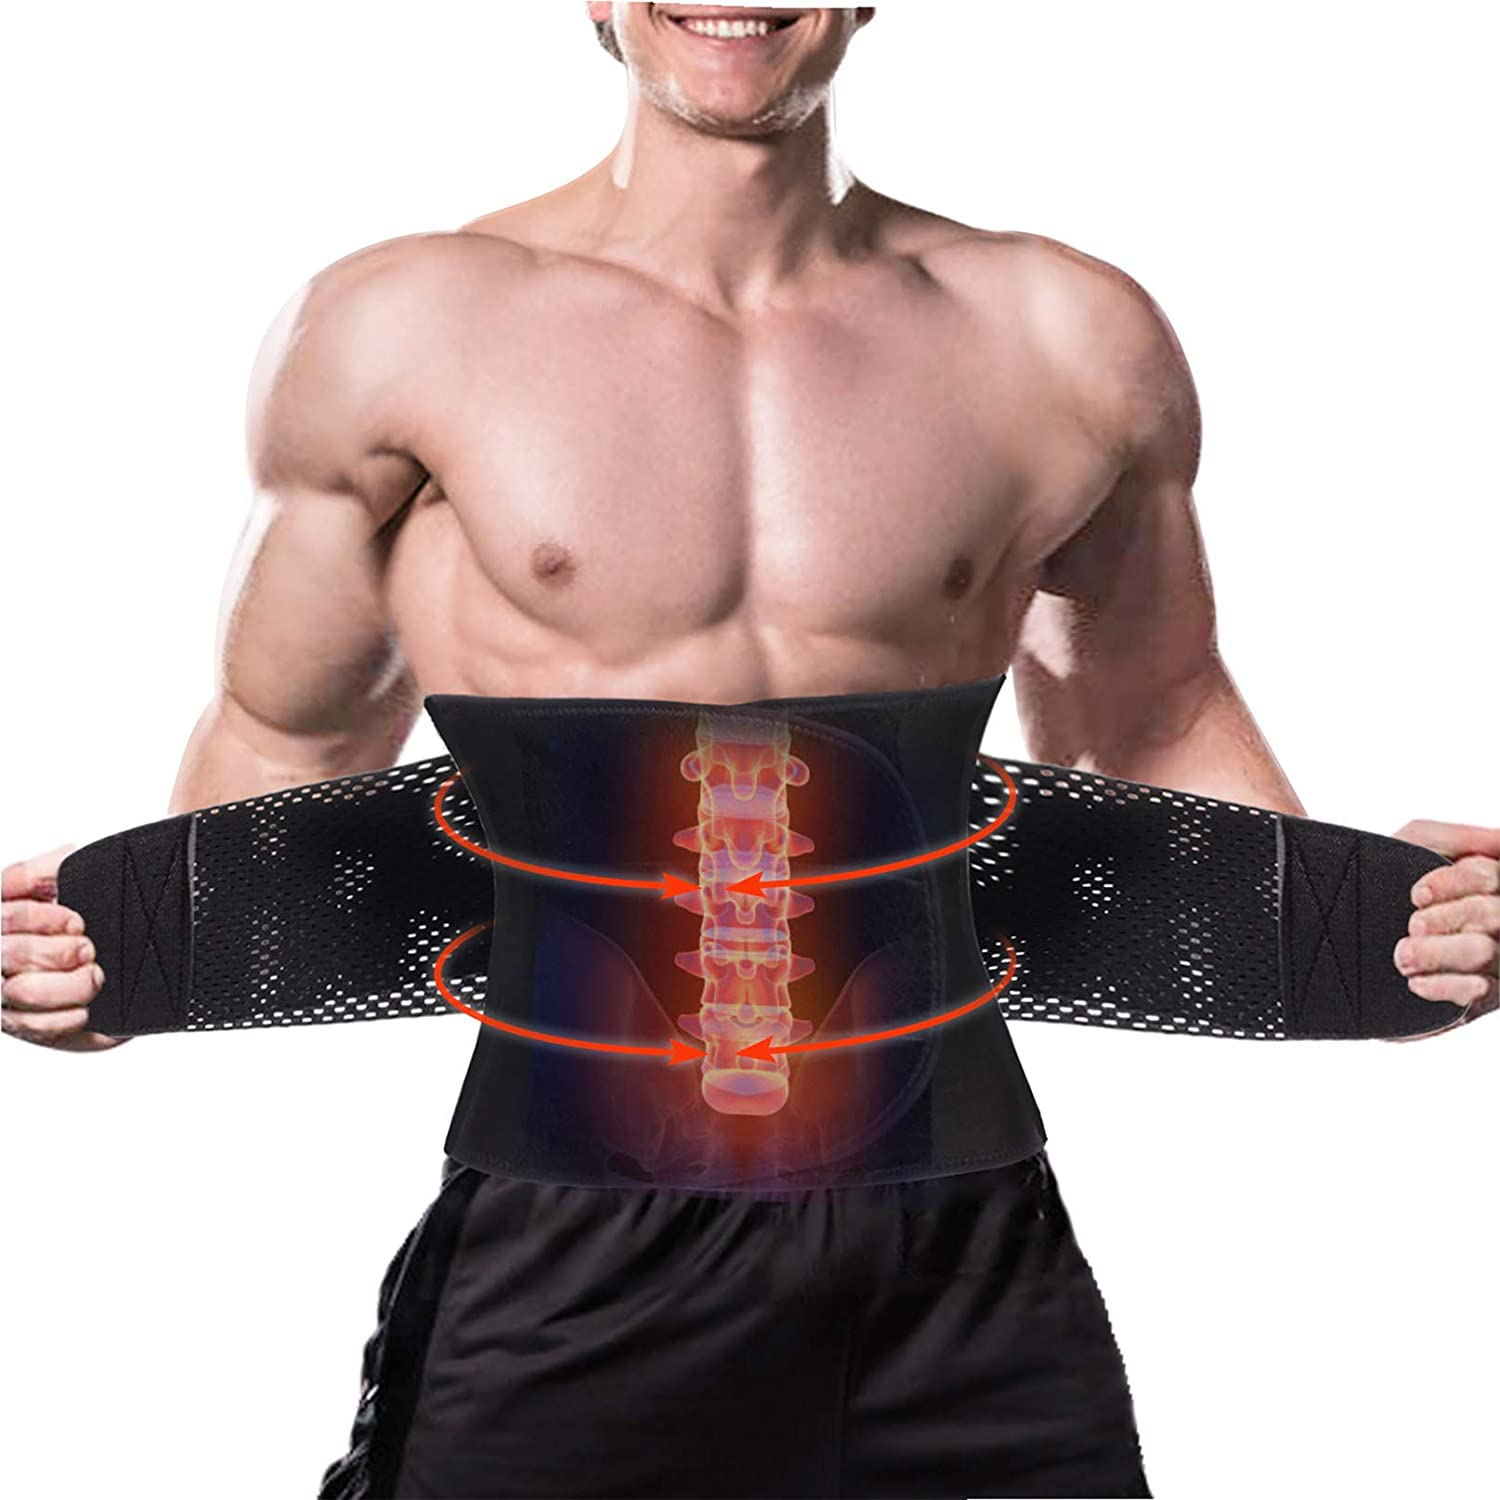 LODAY Back Brace Lumbar Support Belt with Dual Adjustable Straps Fast Lower Back Pain Relief